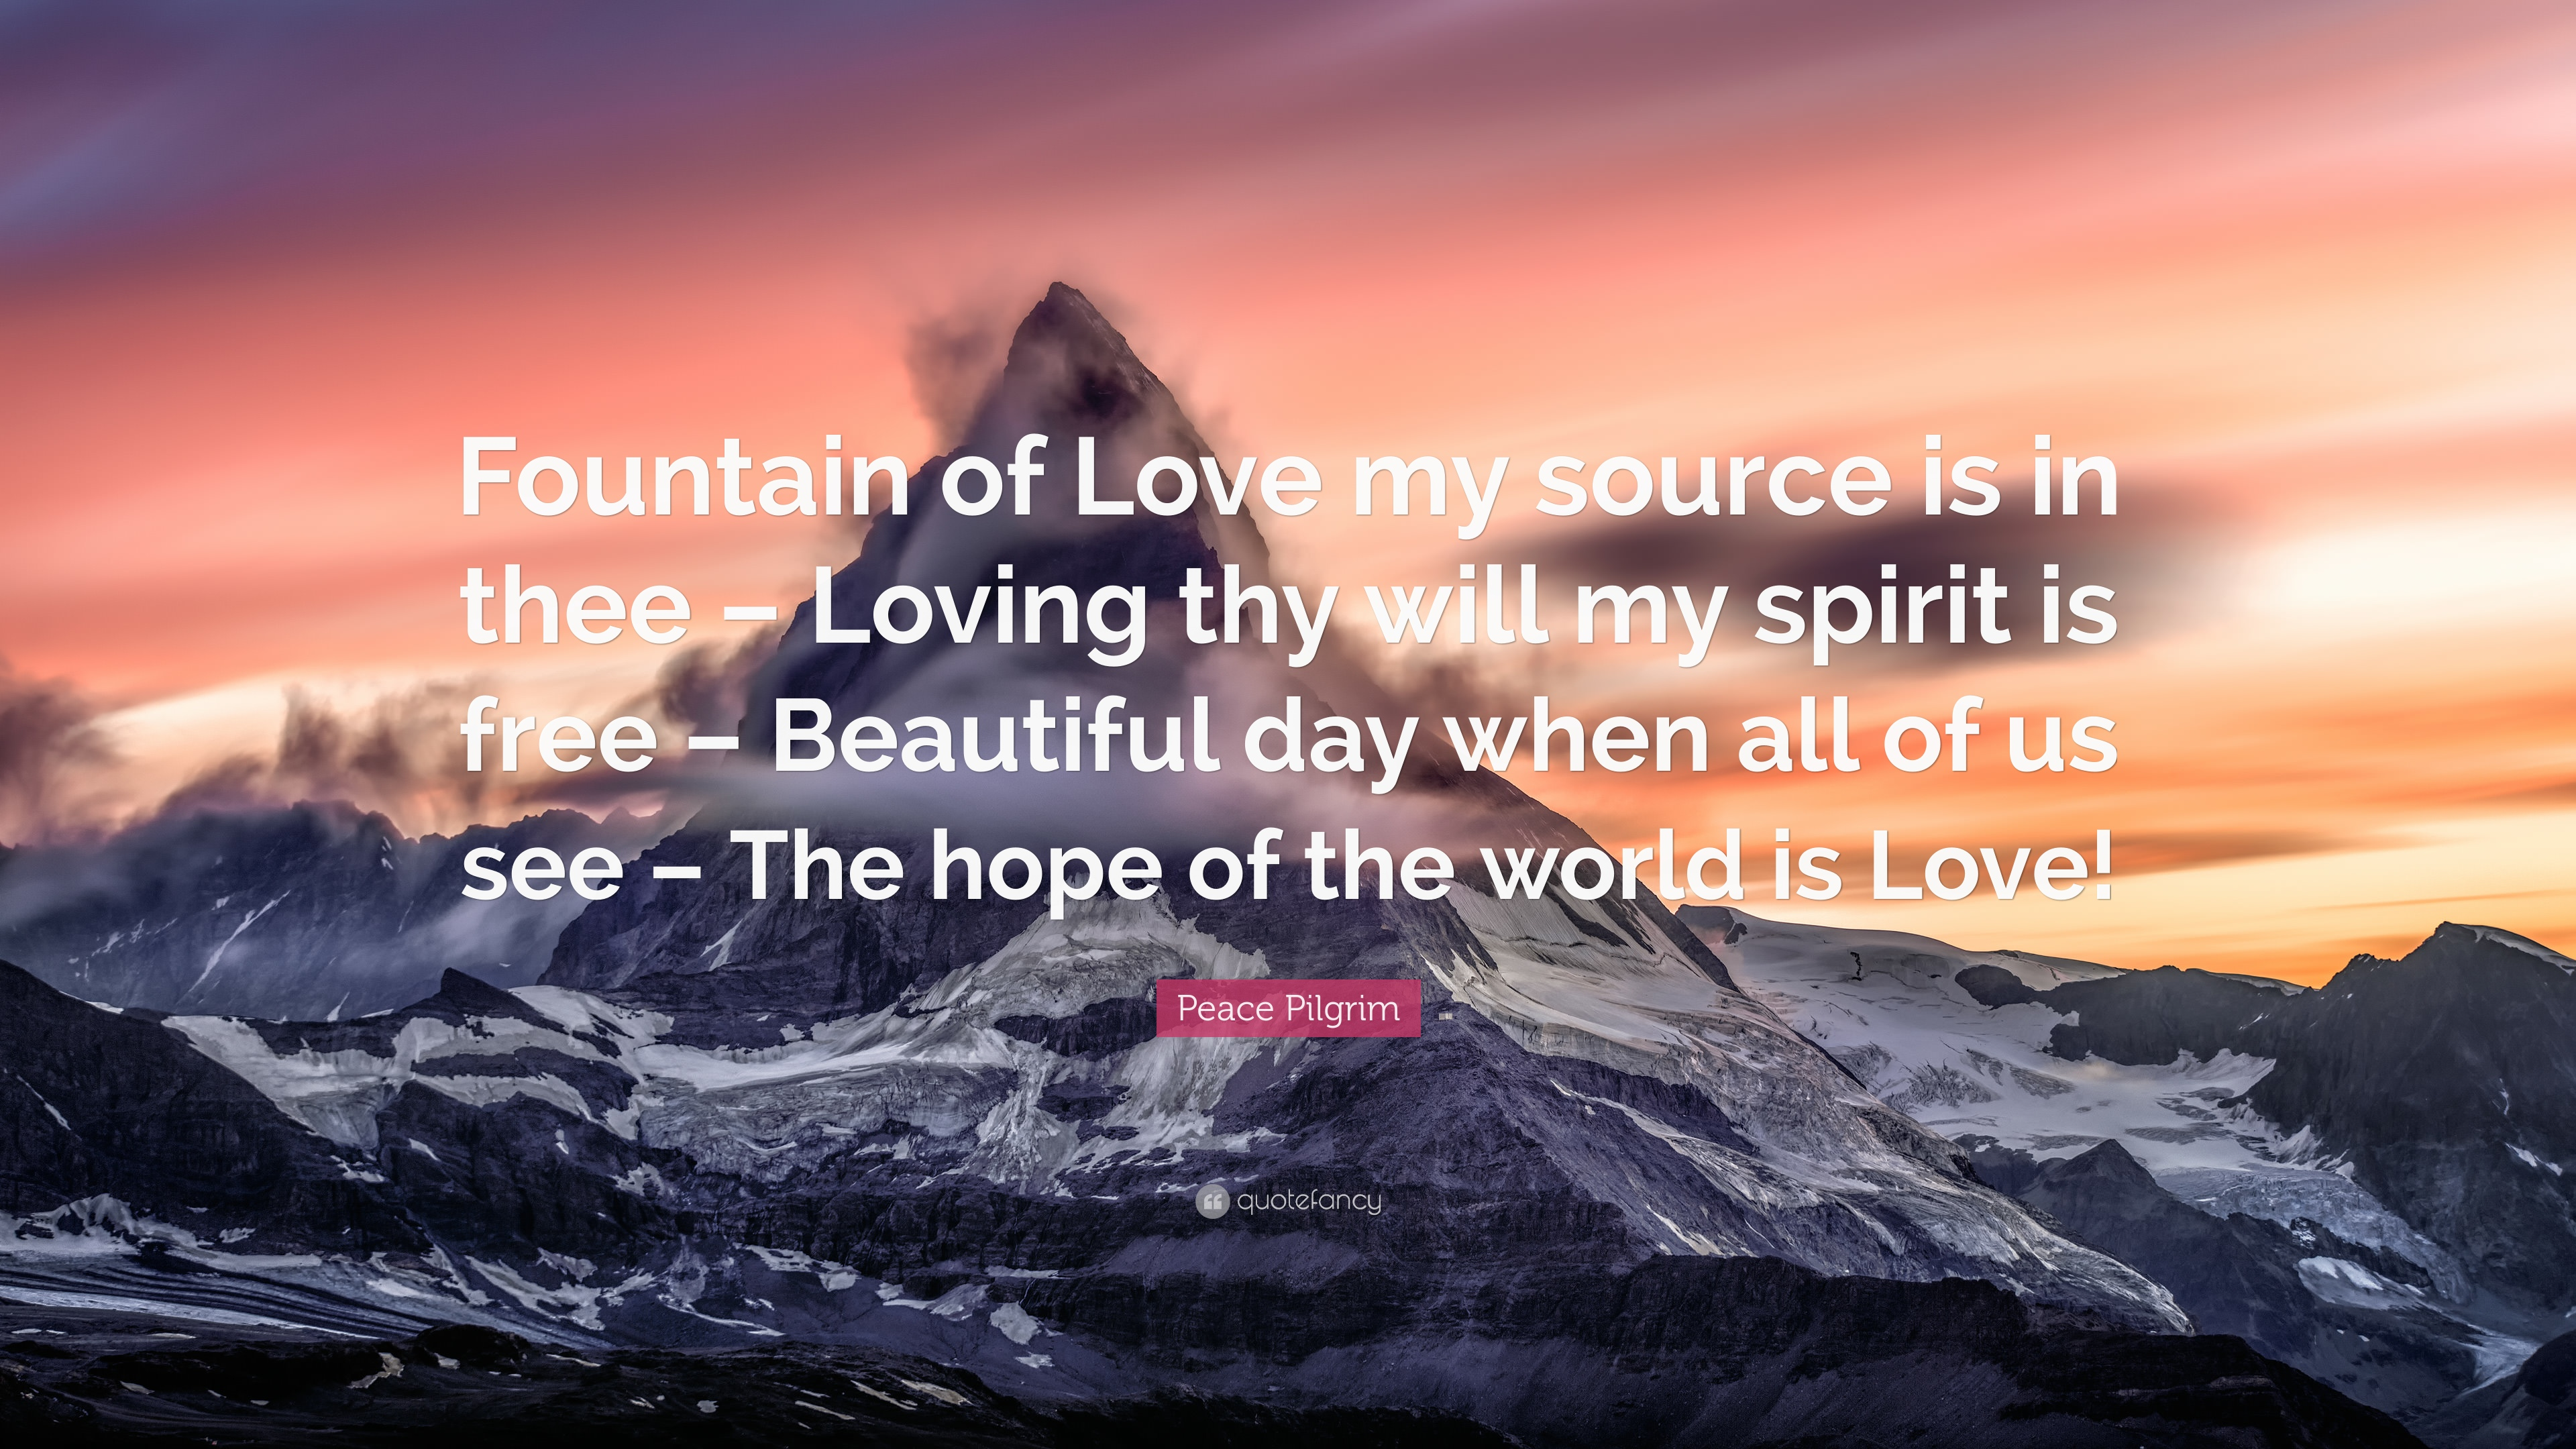 Awesome Peace Pilgrim Quote: U201cFountain Of Love My Source Is In Thee U2013 Loving Thy